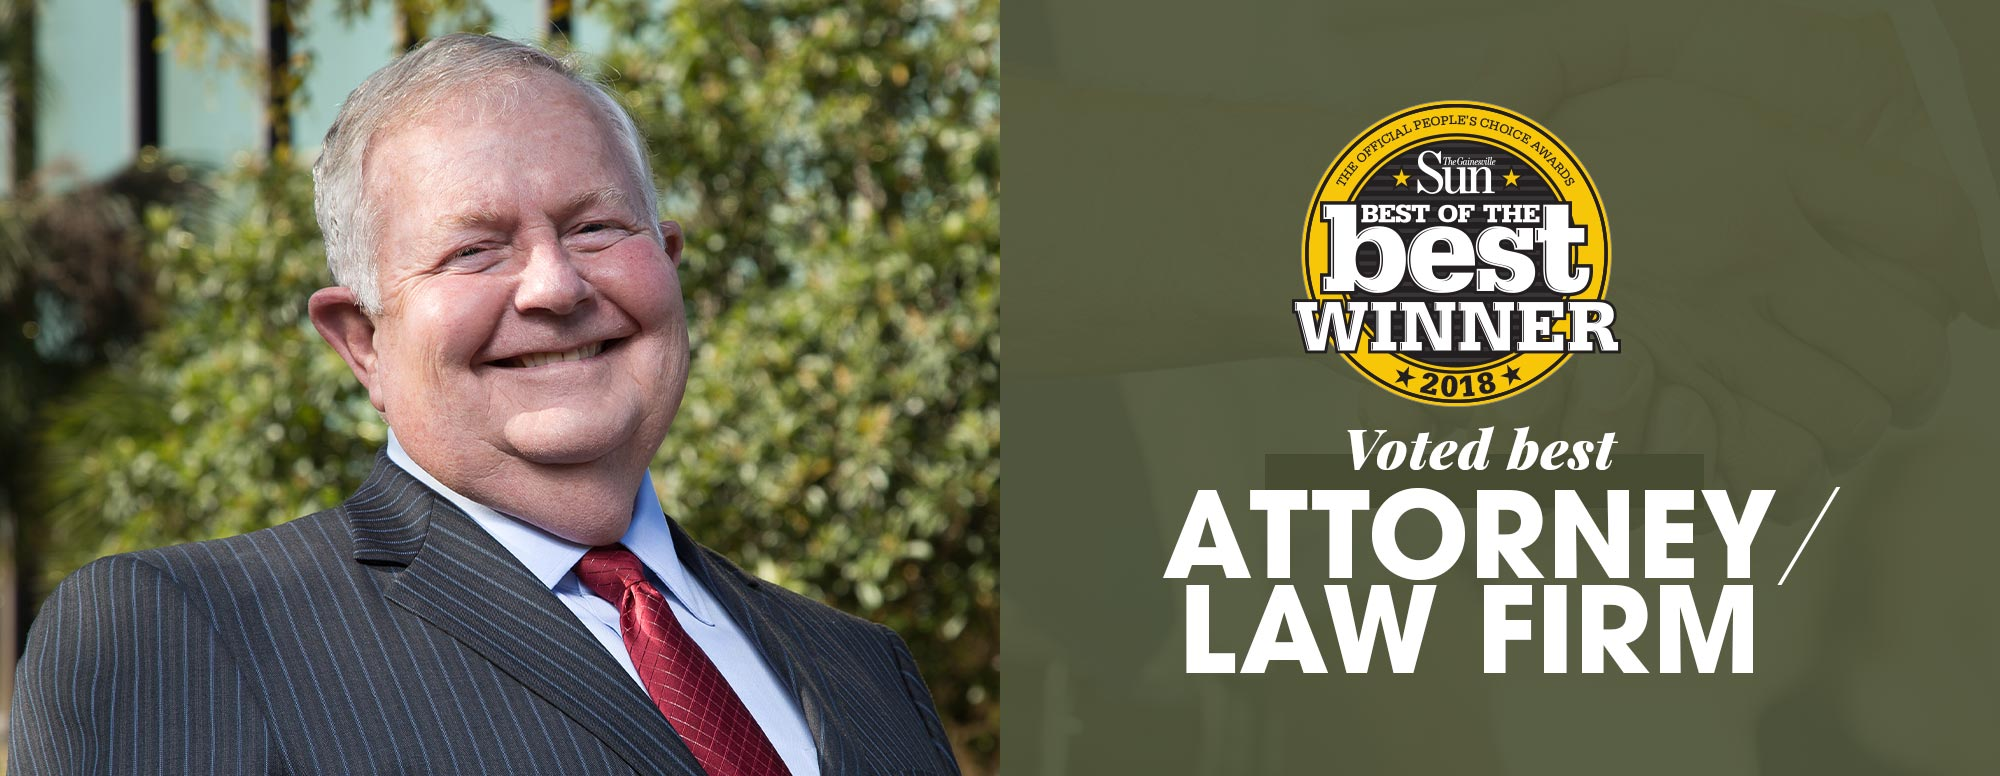 Voted Best Gainesville Attorney / Law Firm - Family Law, Business Law, Estate Planning, Probat and Civil Appeals